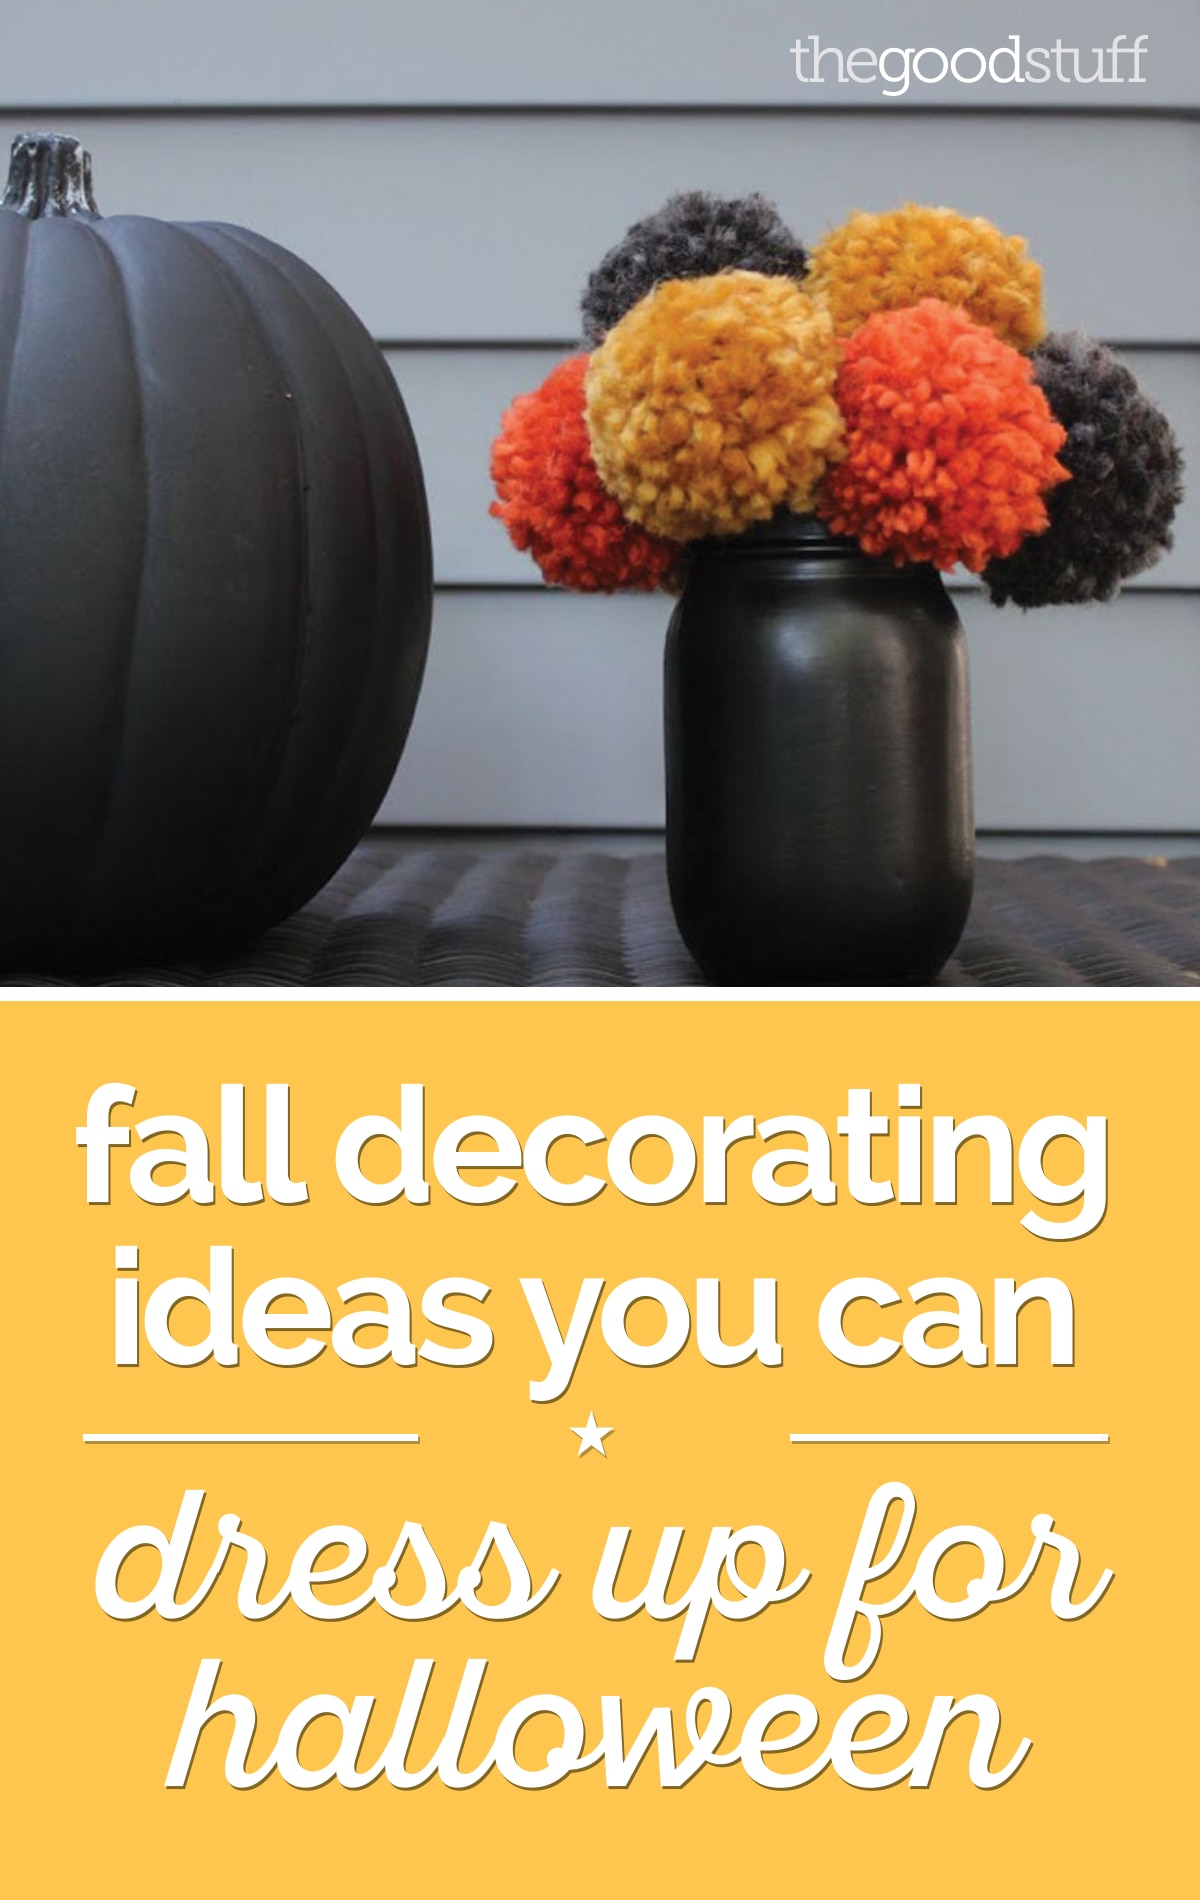 Fall Decorating Ideas You Can Dress Up for Halloween | thegoodstuff